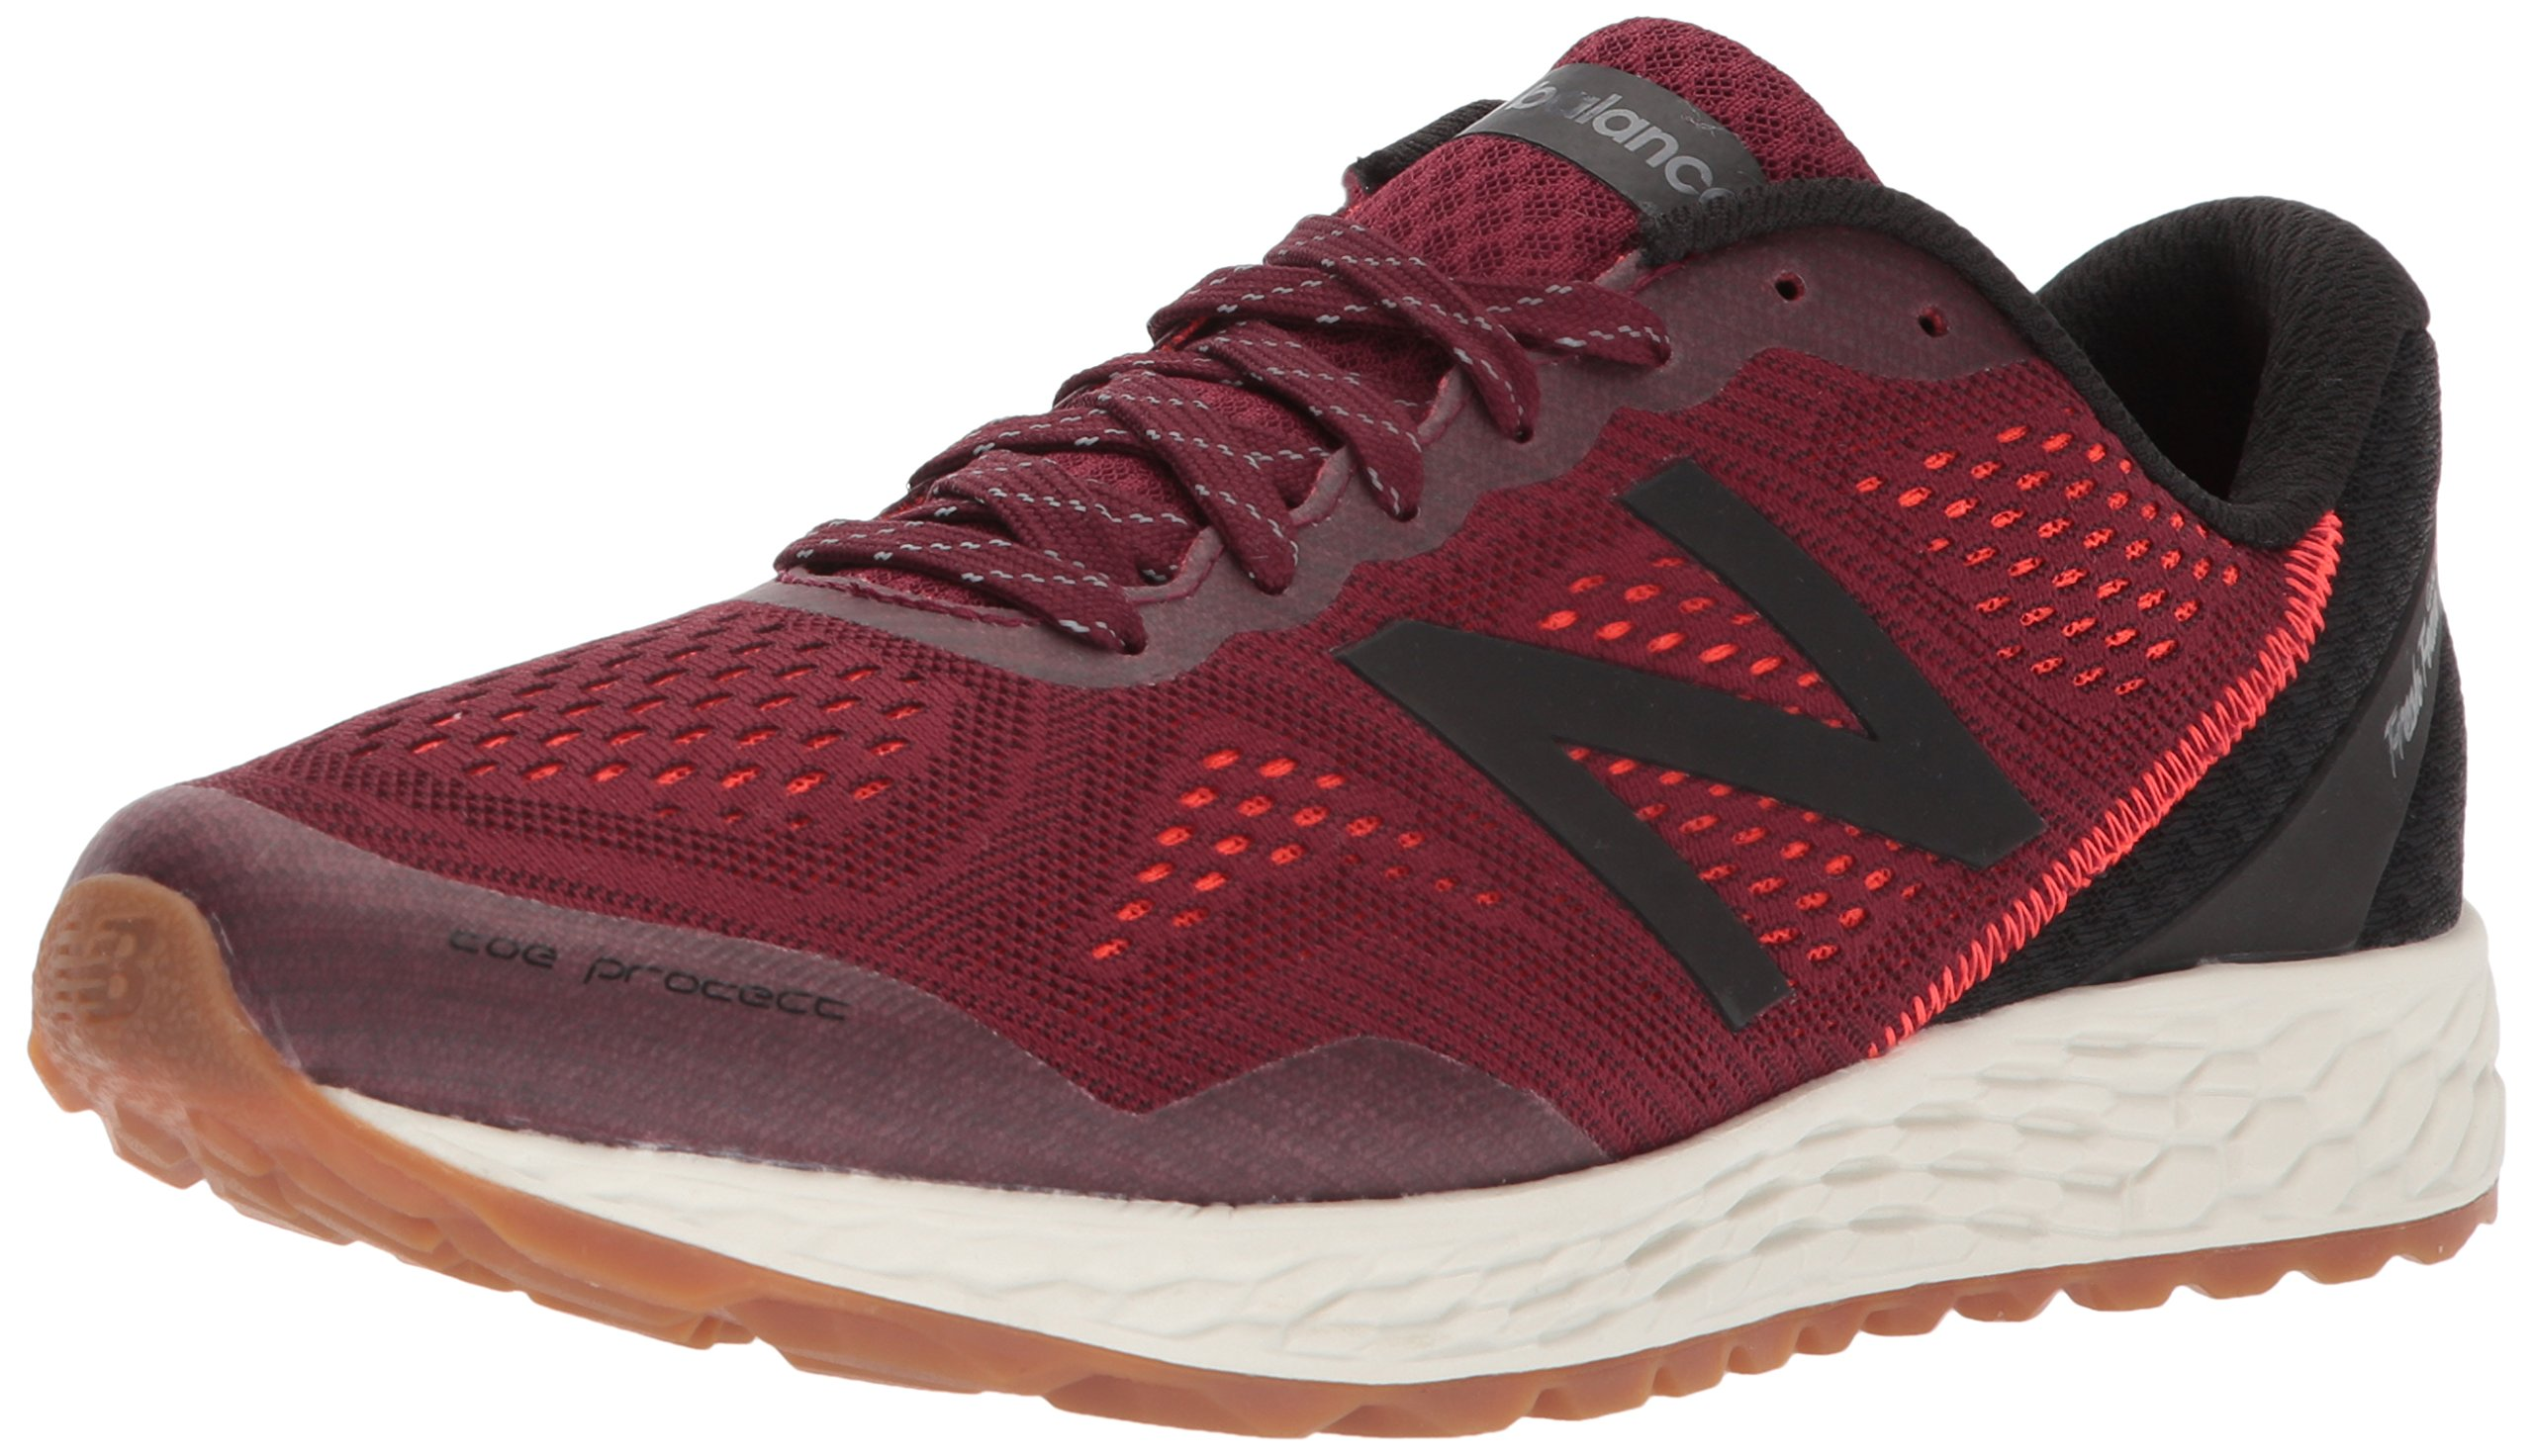 New Balance Men's Gobi v2 Fresh Foam Trail Running Shoe, Burgundy/Black, 11 D US